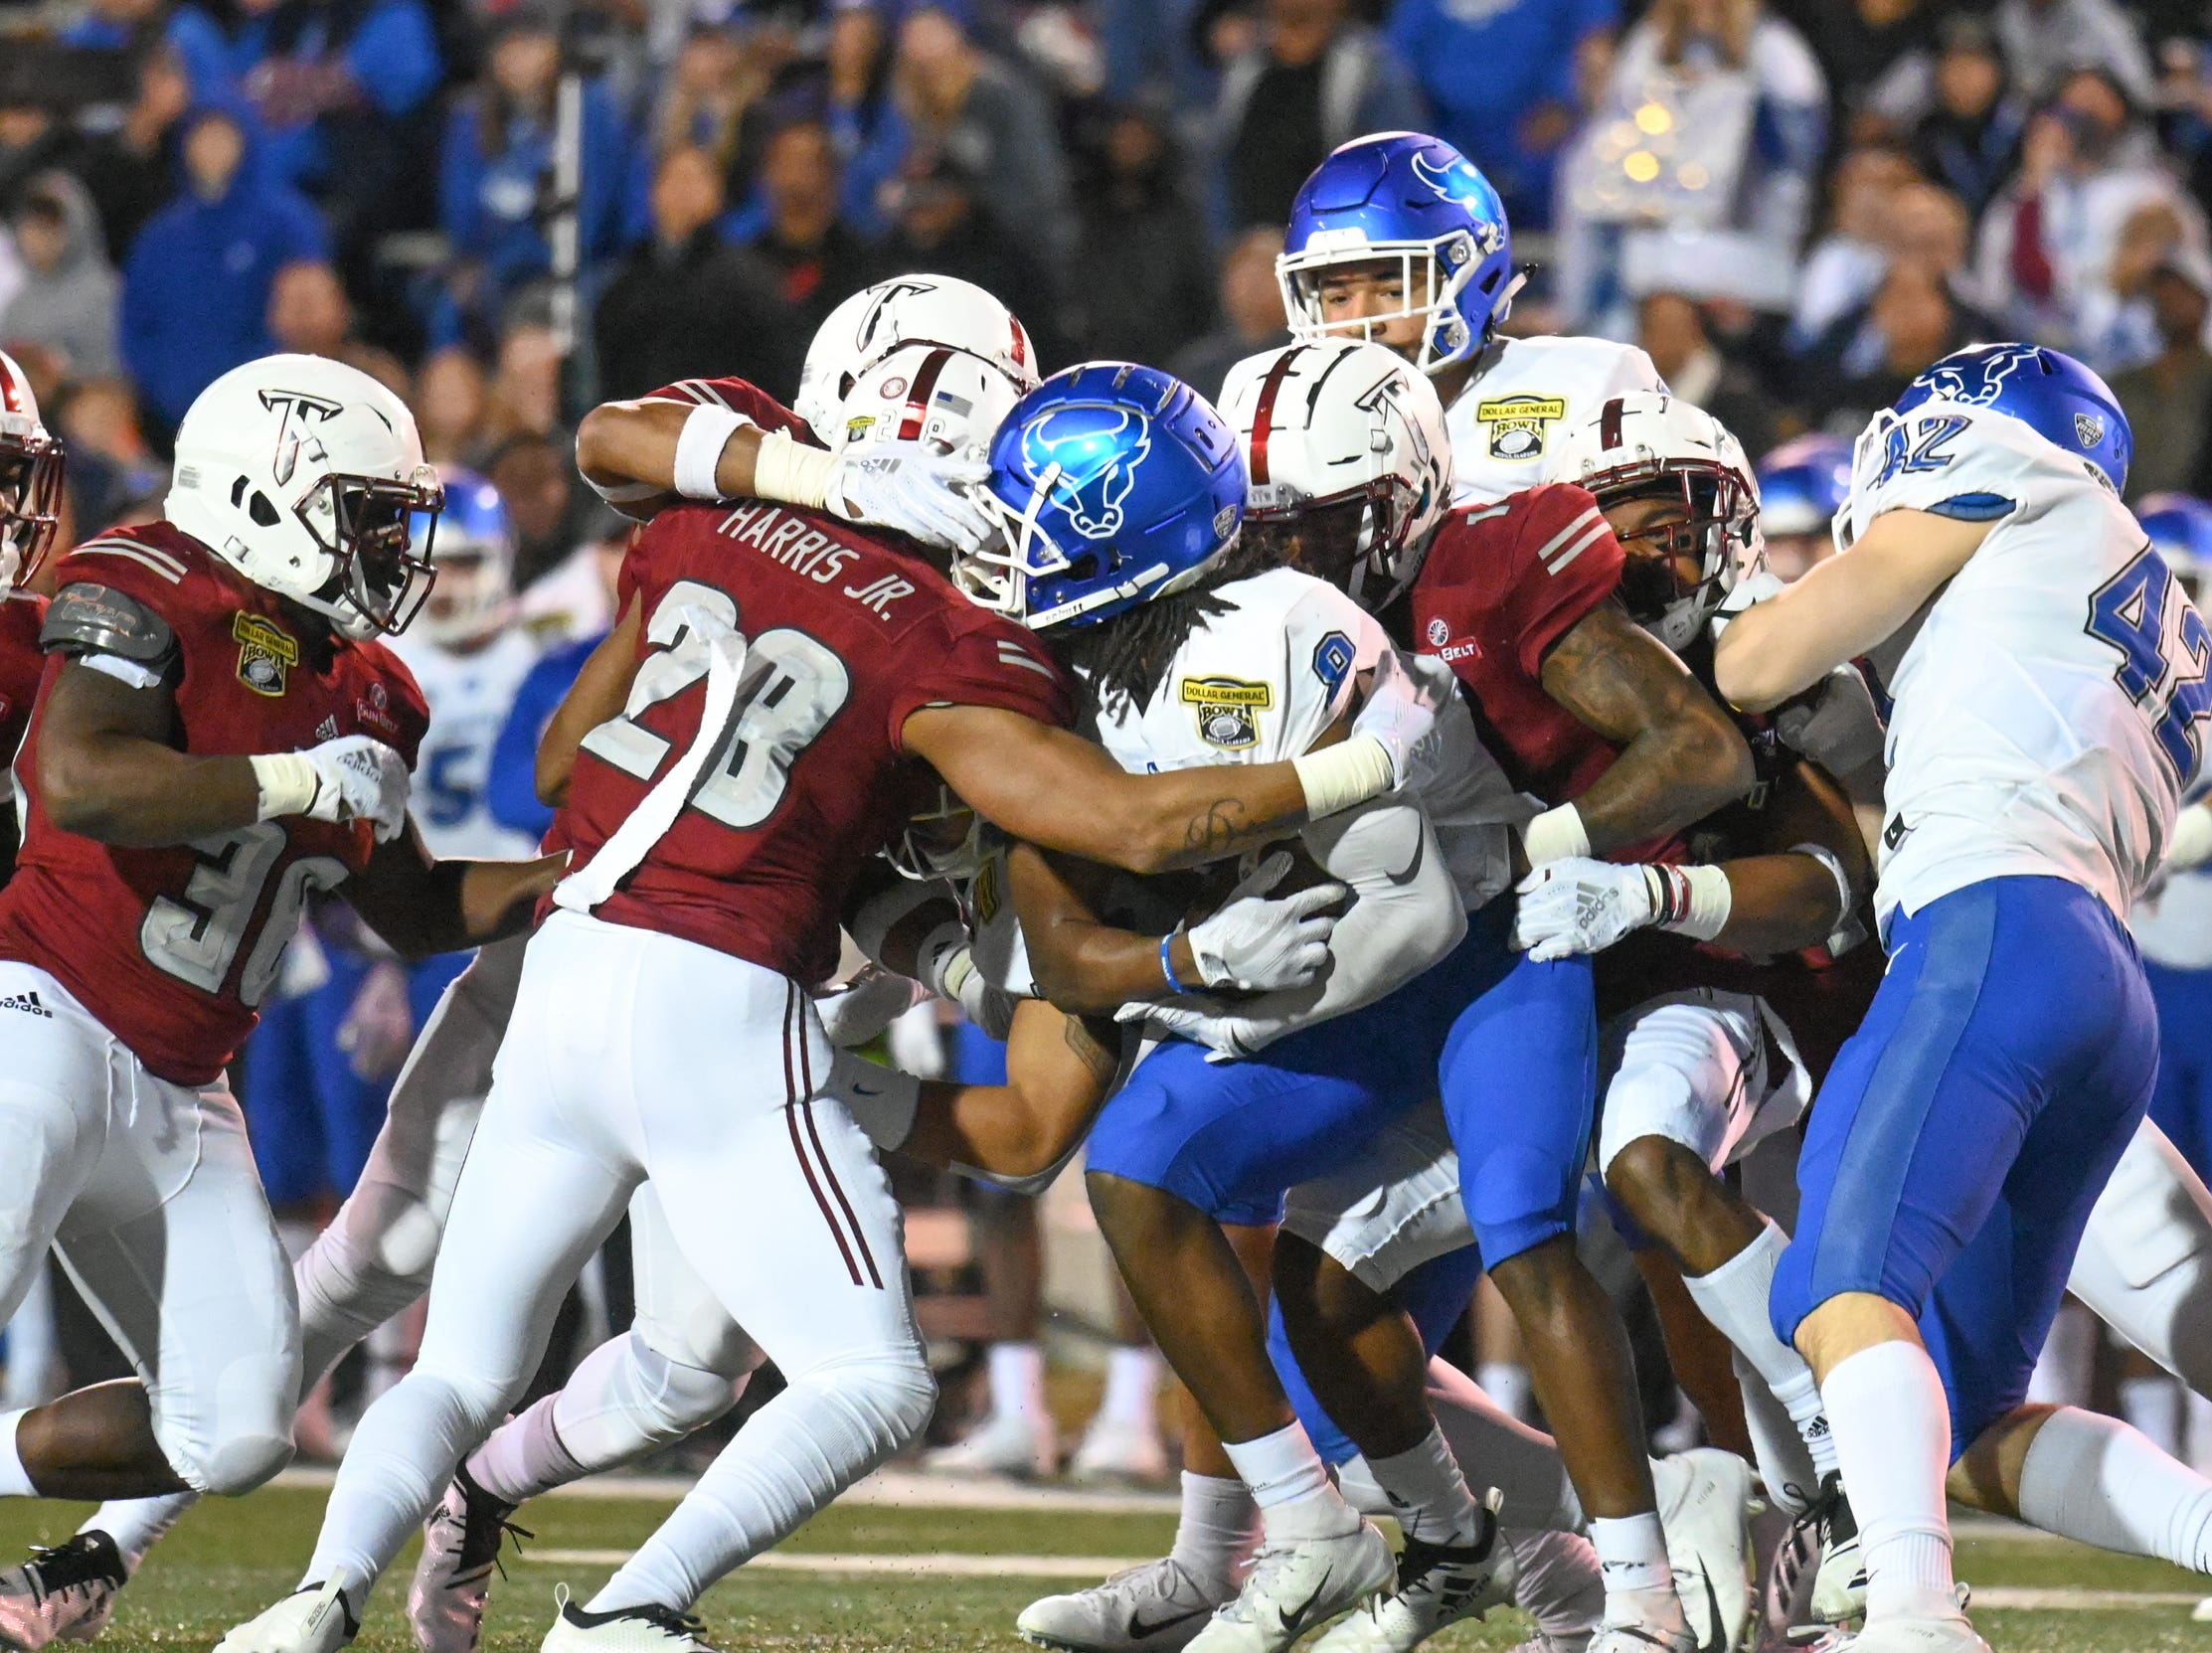 Buffalo Bulls wide receiver K.J. Osborn (8) is wrapped up by the Troy defense  during the Dollar General Bowl held at Ladd-Peebles Stadium in Mobile on Saturday, Dec. 22, 2018.